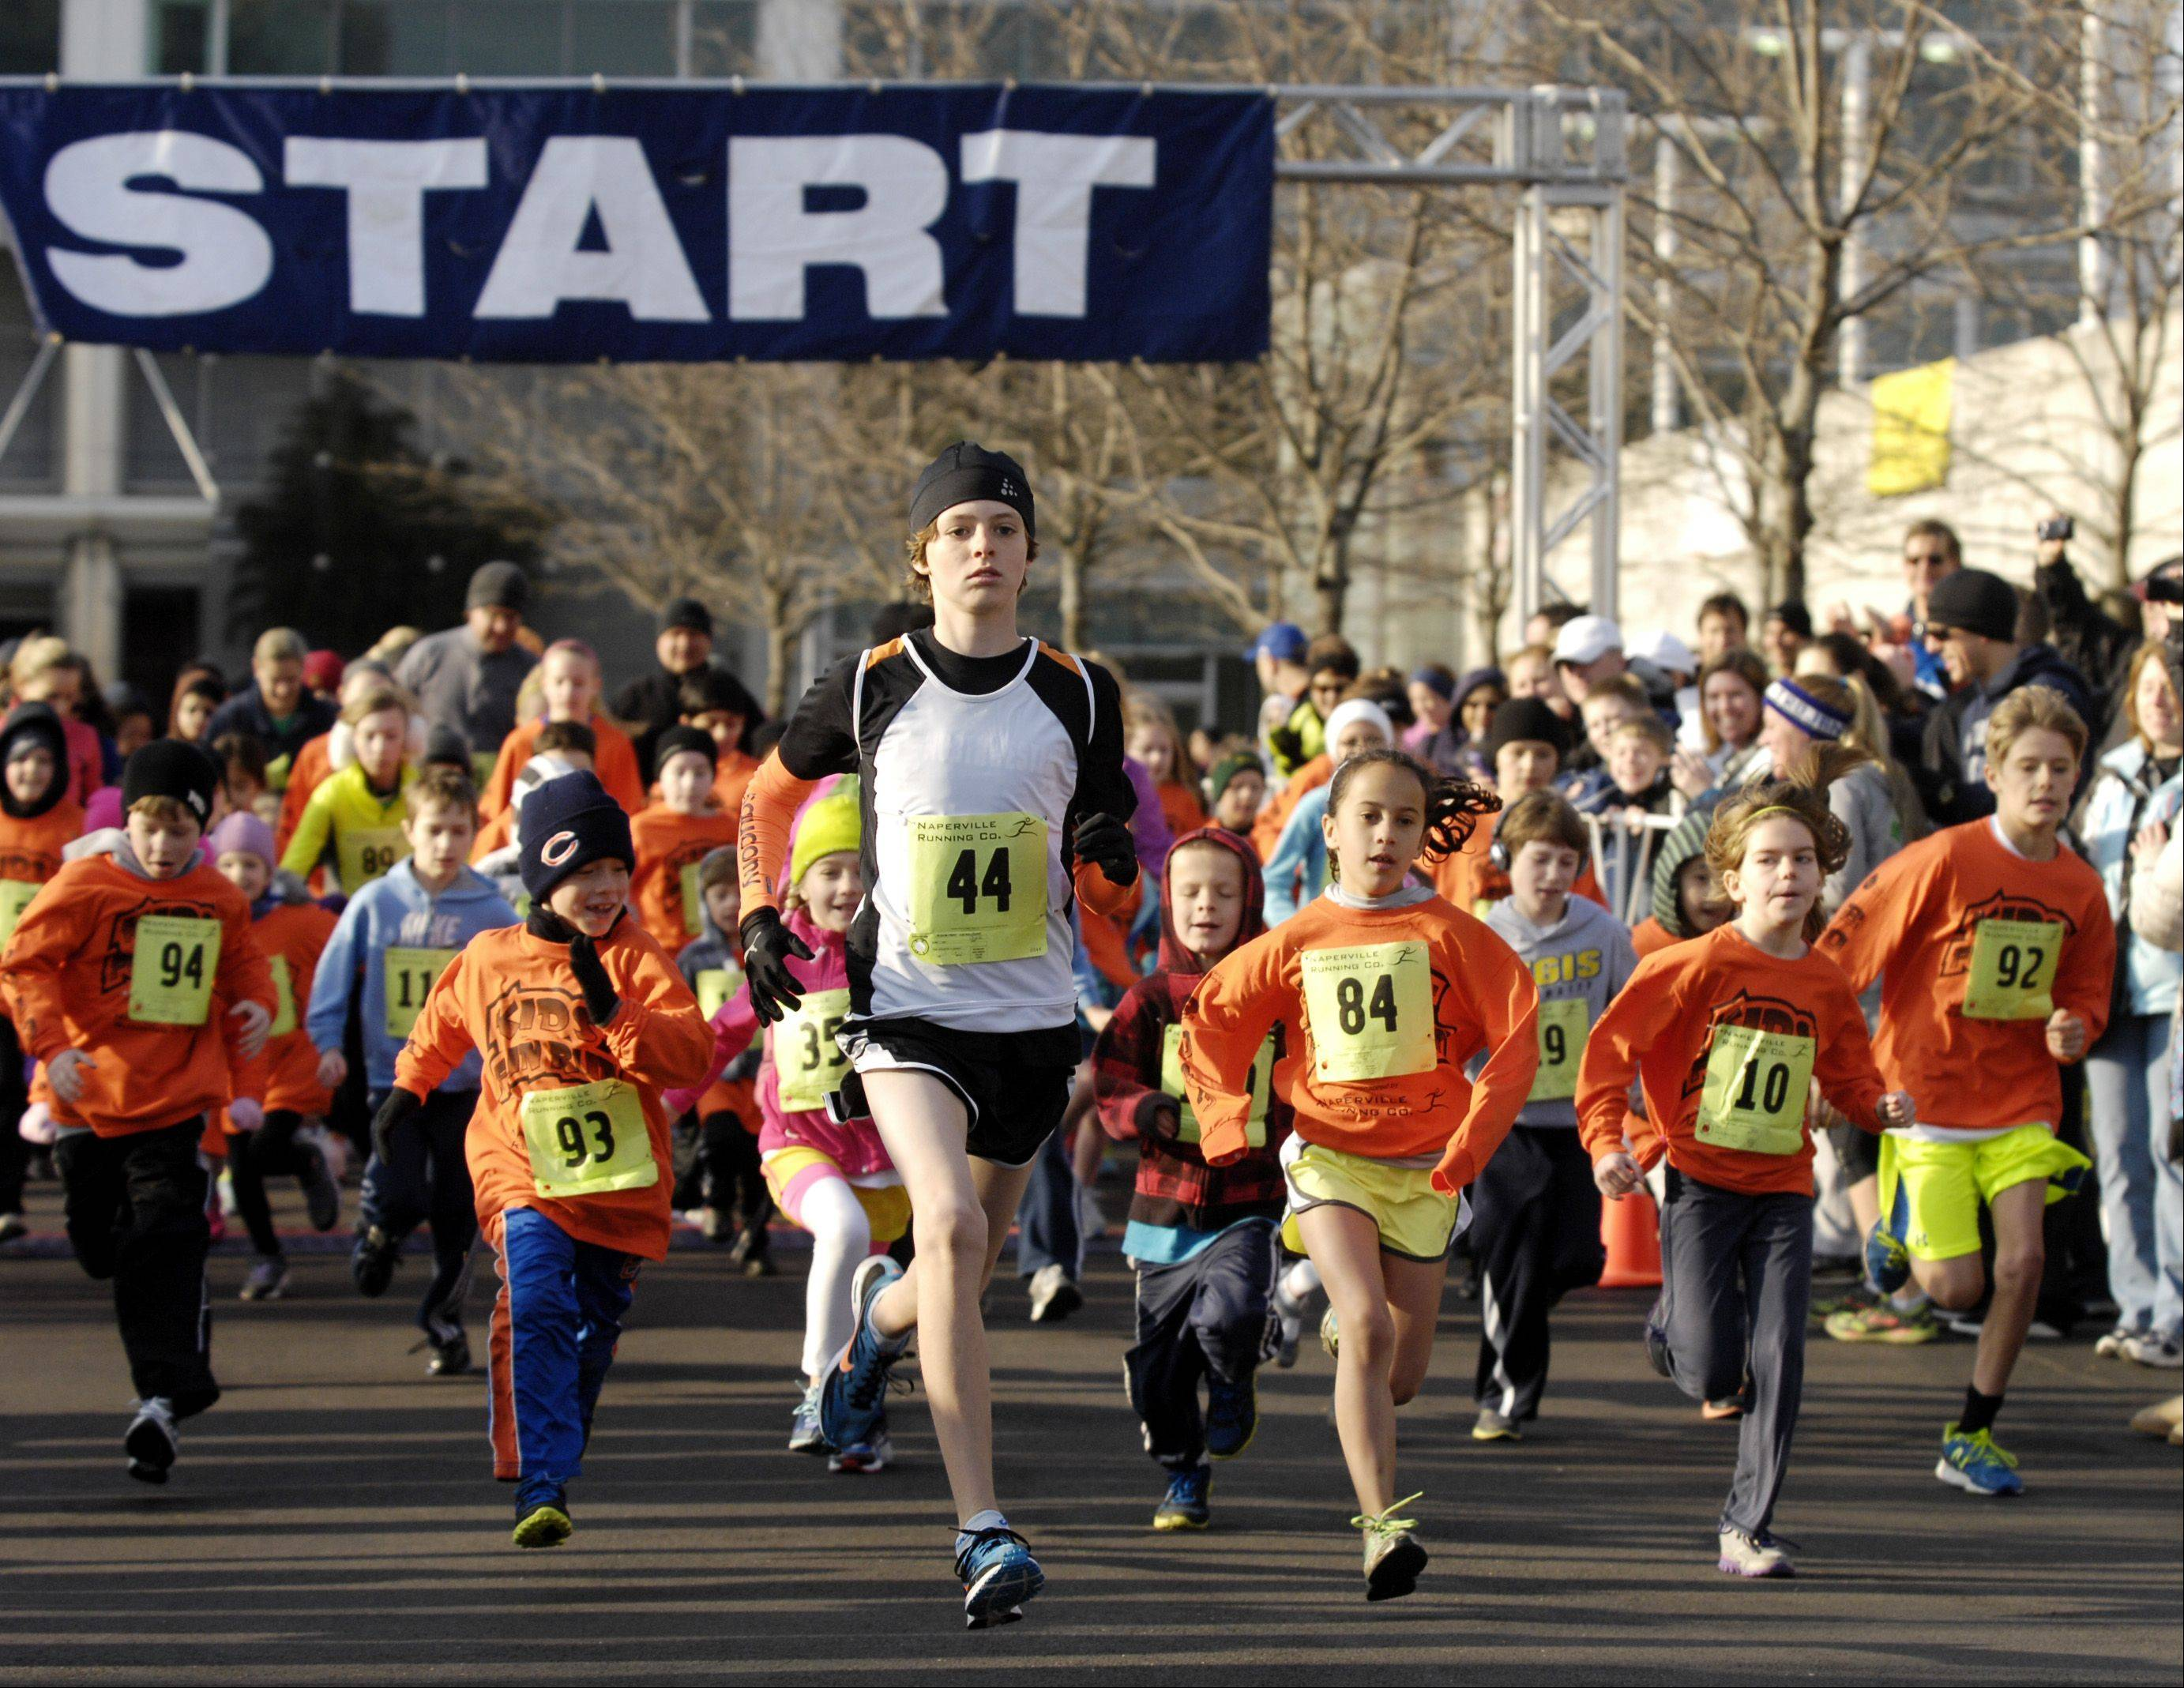 Jack James, 11, of Wheaton, takes the lead and keeps it to win the 1 mile Kids Fun Run during the 14th annual 360 Sprint Ahead Run in Naperville Sunday. The races benefit Naperville based 360 Youth Services.